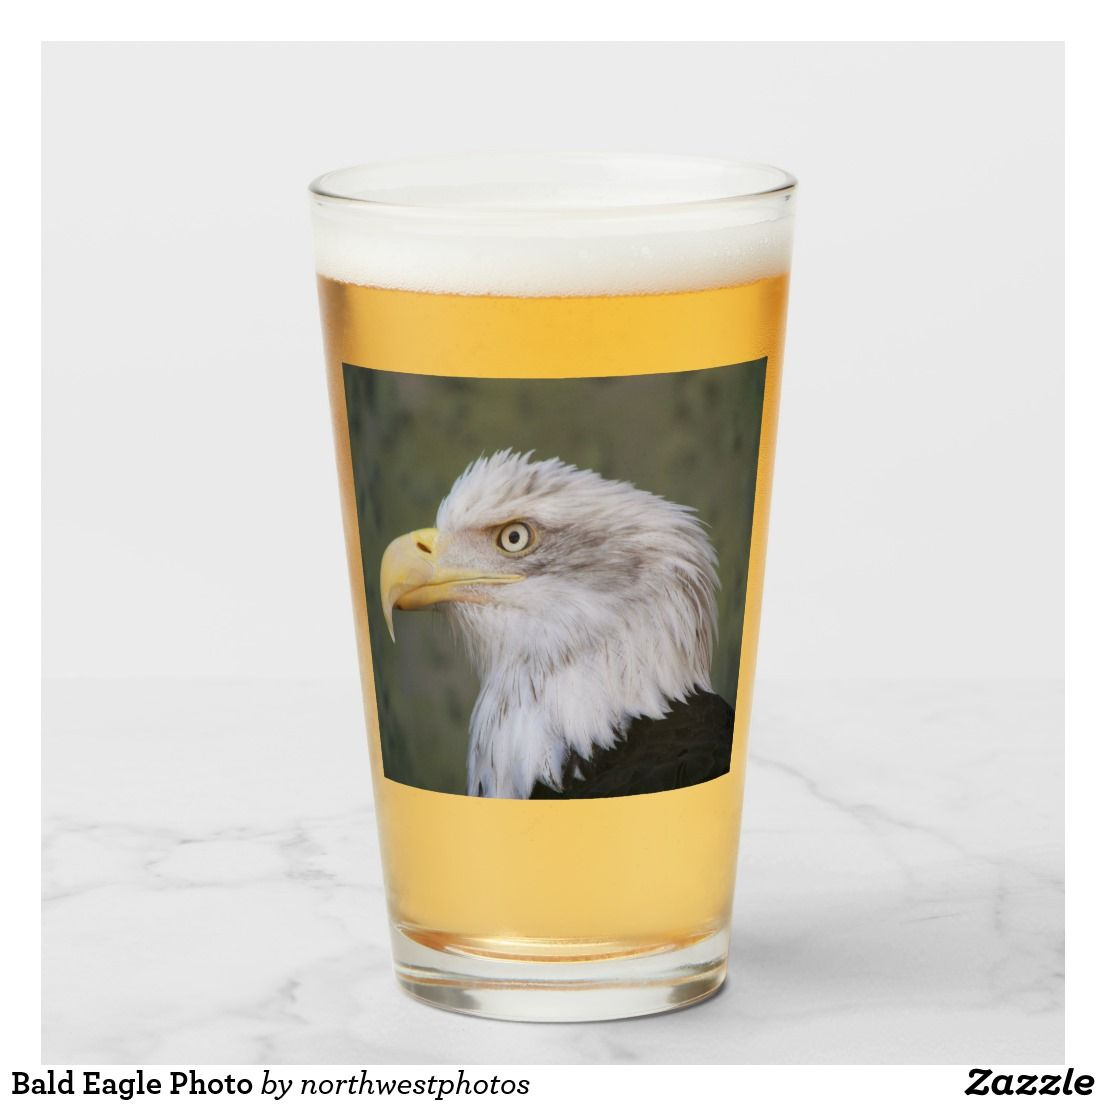 White Headed Bald Eagle Photo Glass Zazzle Com Bald Eagle Photo Bald Eagle American Bald Eagle